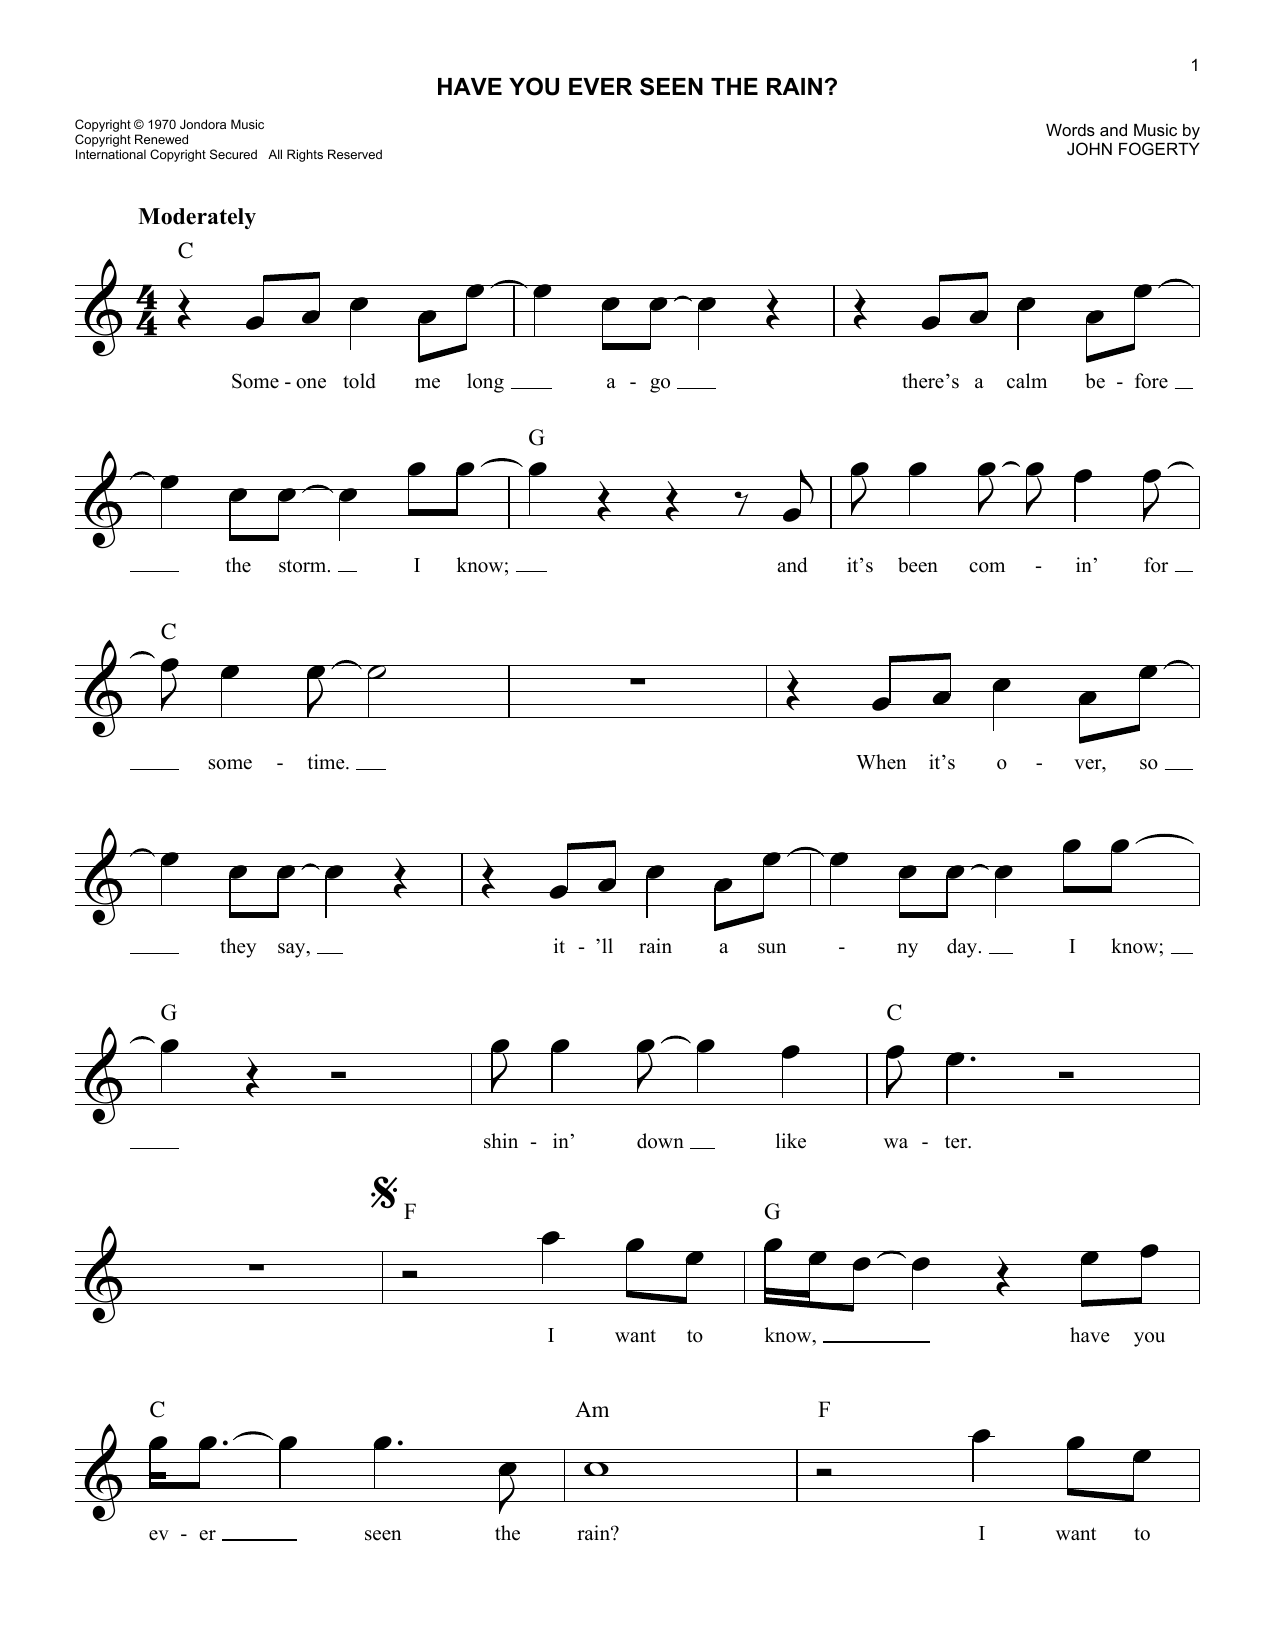 Have you ever seen the rain chords by creedence clearwater have you ever seen the rain sheet music hexwebz Choice Image